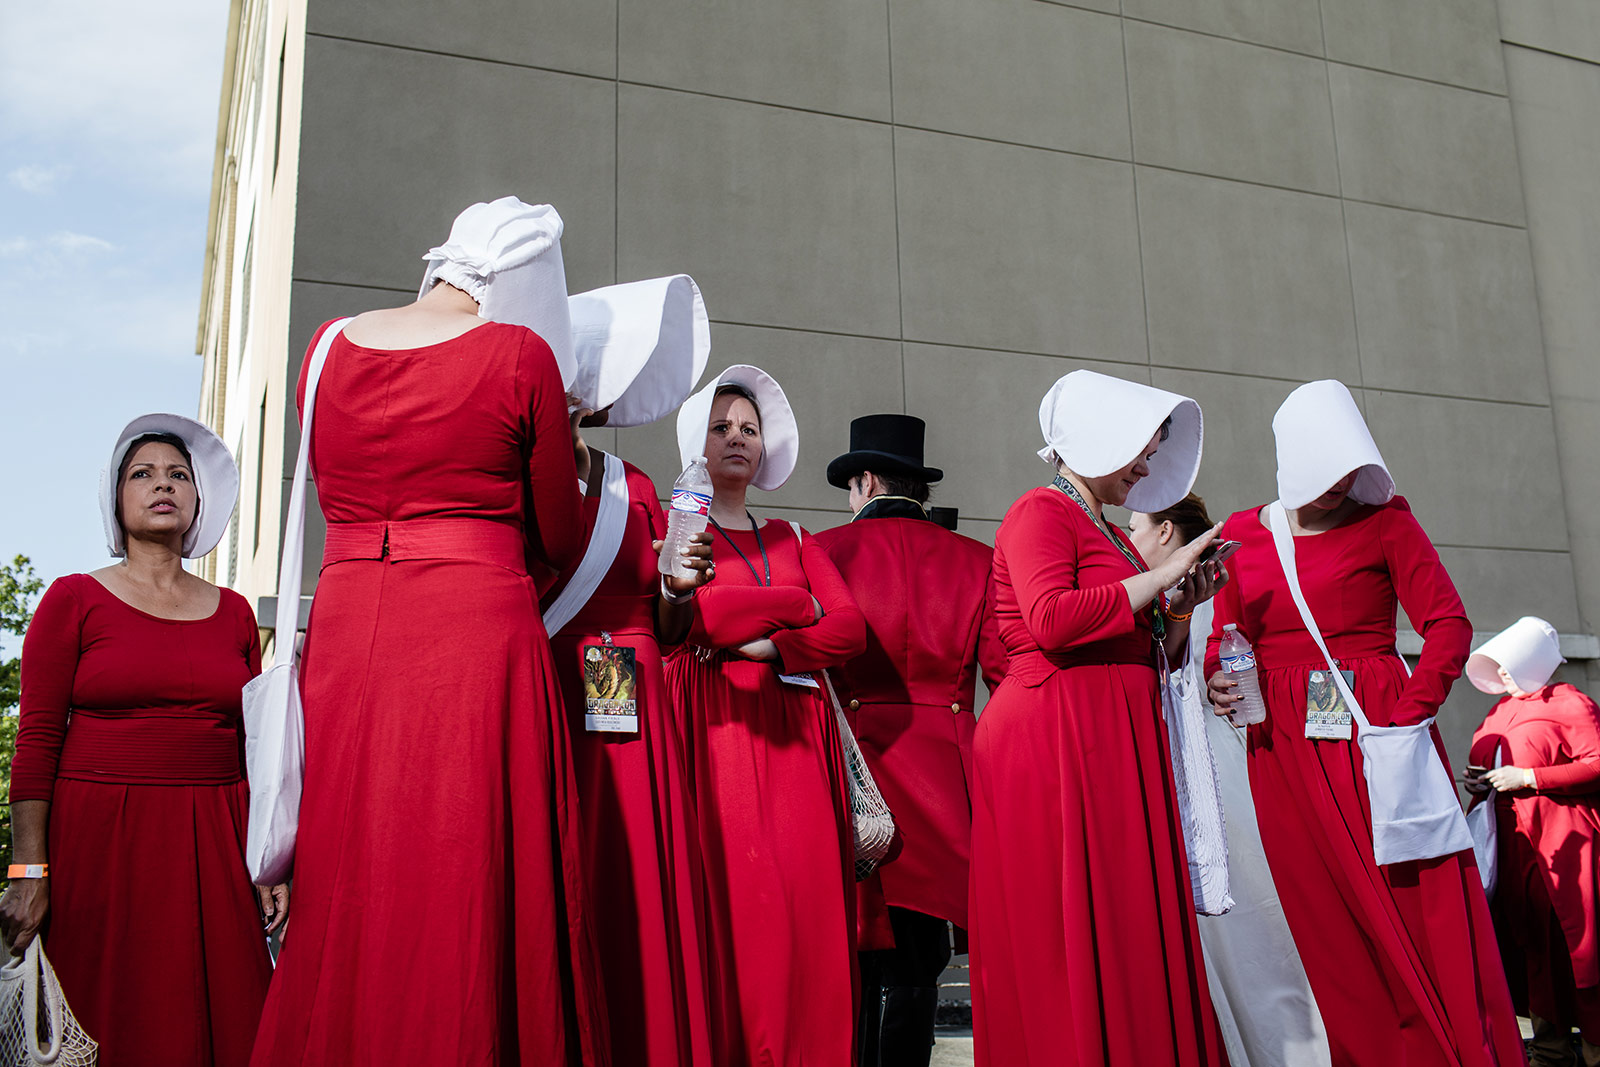 What it's really like at Dragon Con - CNN com